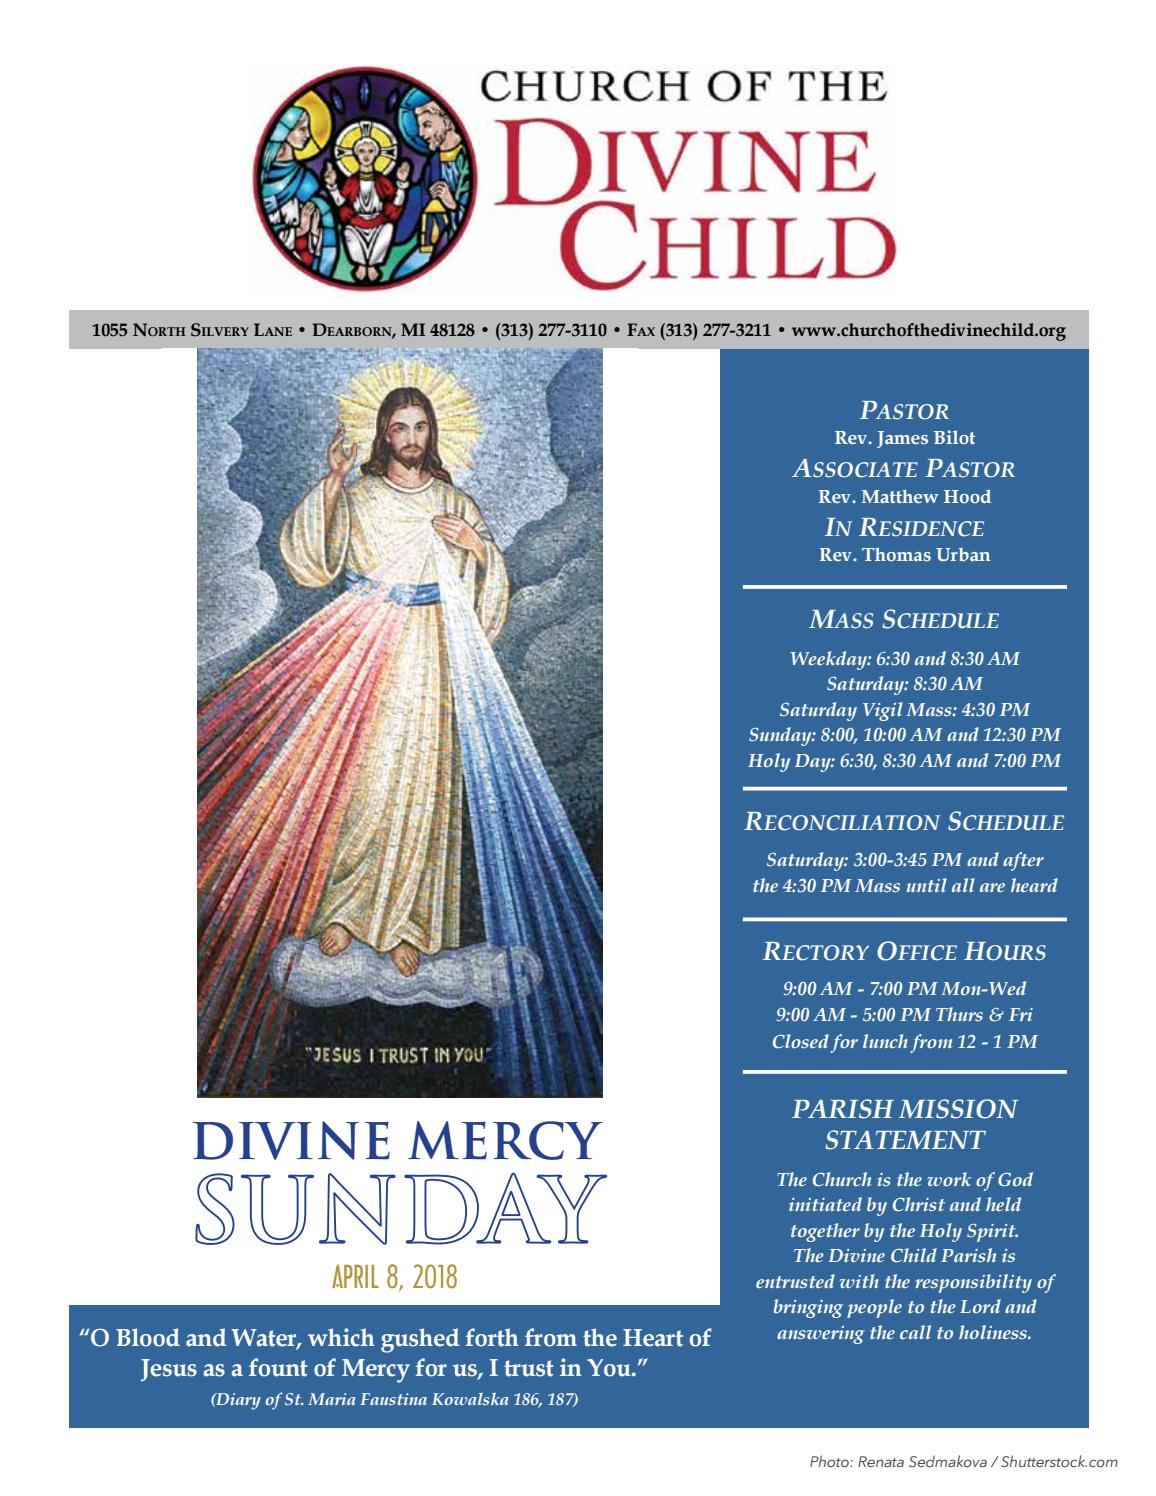 Divine child 4 8 by Church of the Divine Child - issuu